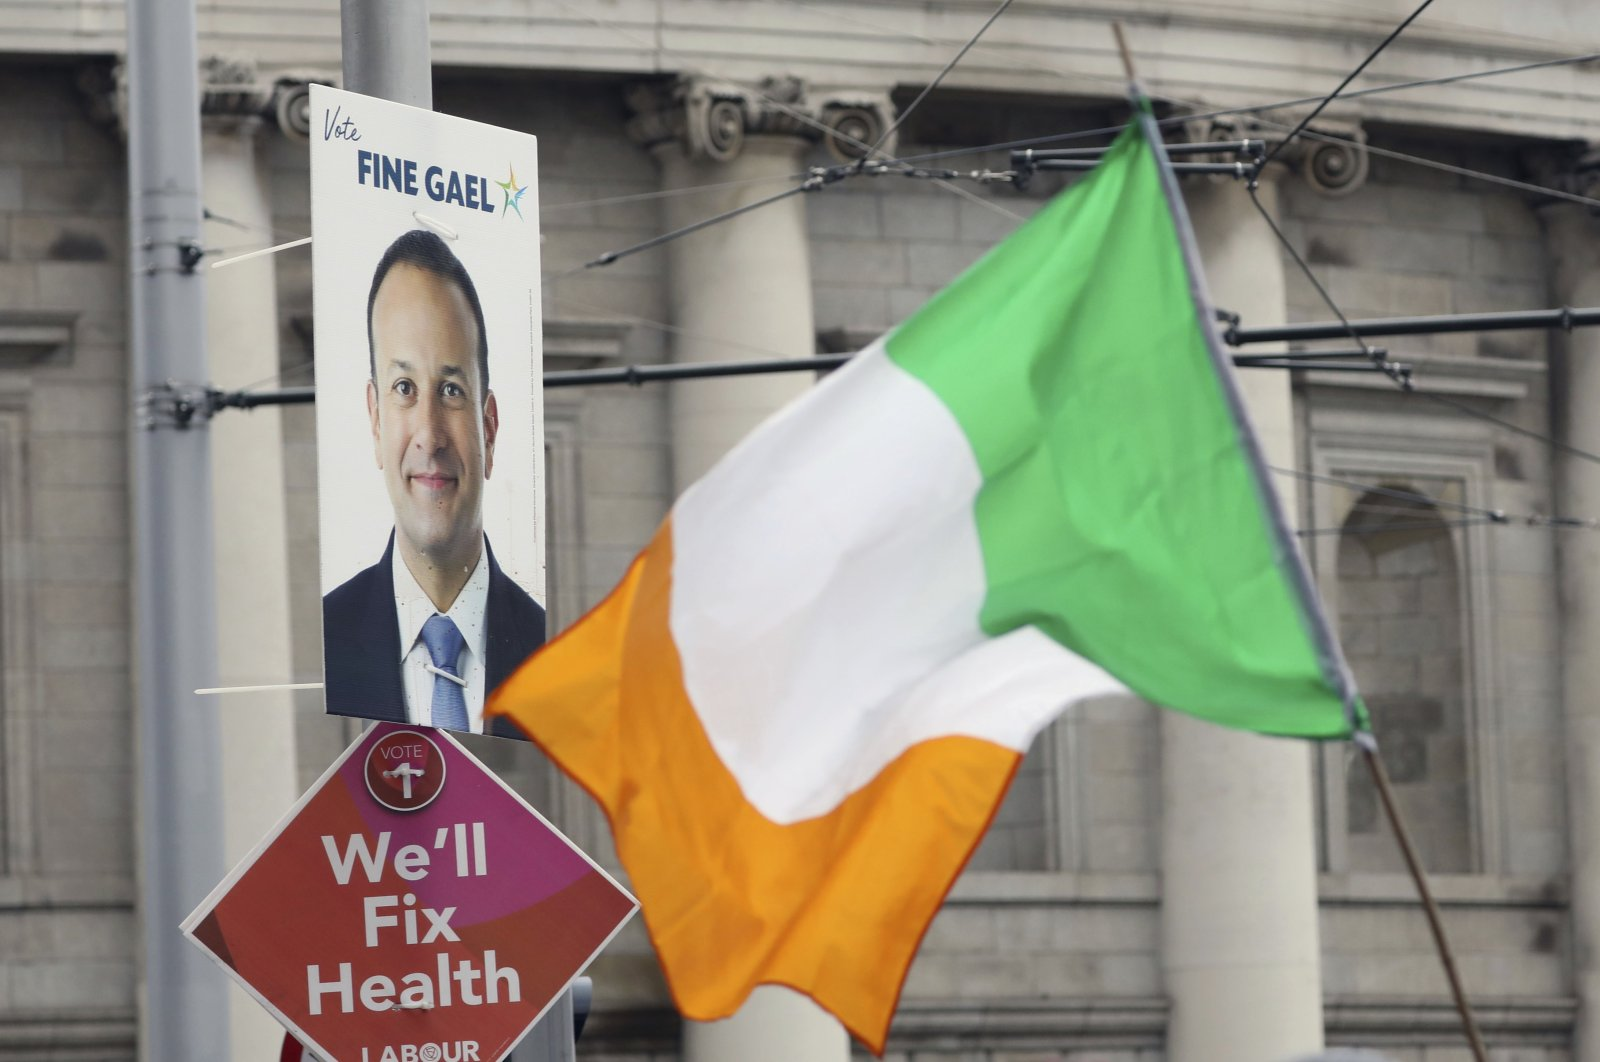 Election posters are displayed on lampposts in Dublin, Ireland, Feb. 7, 2020. (AP Photo)